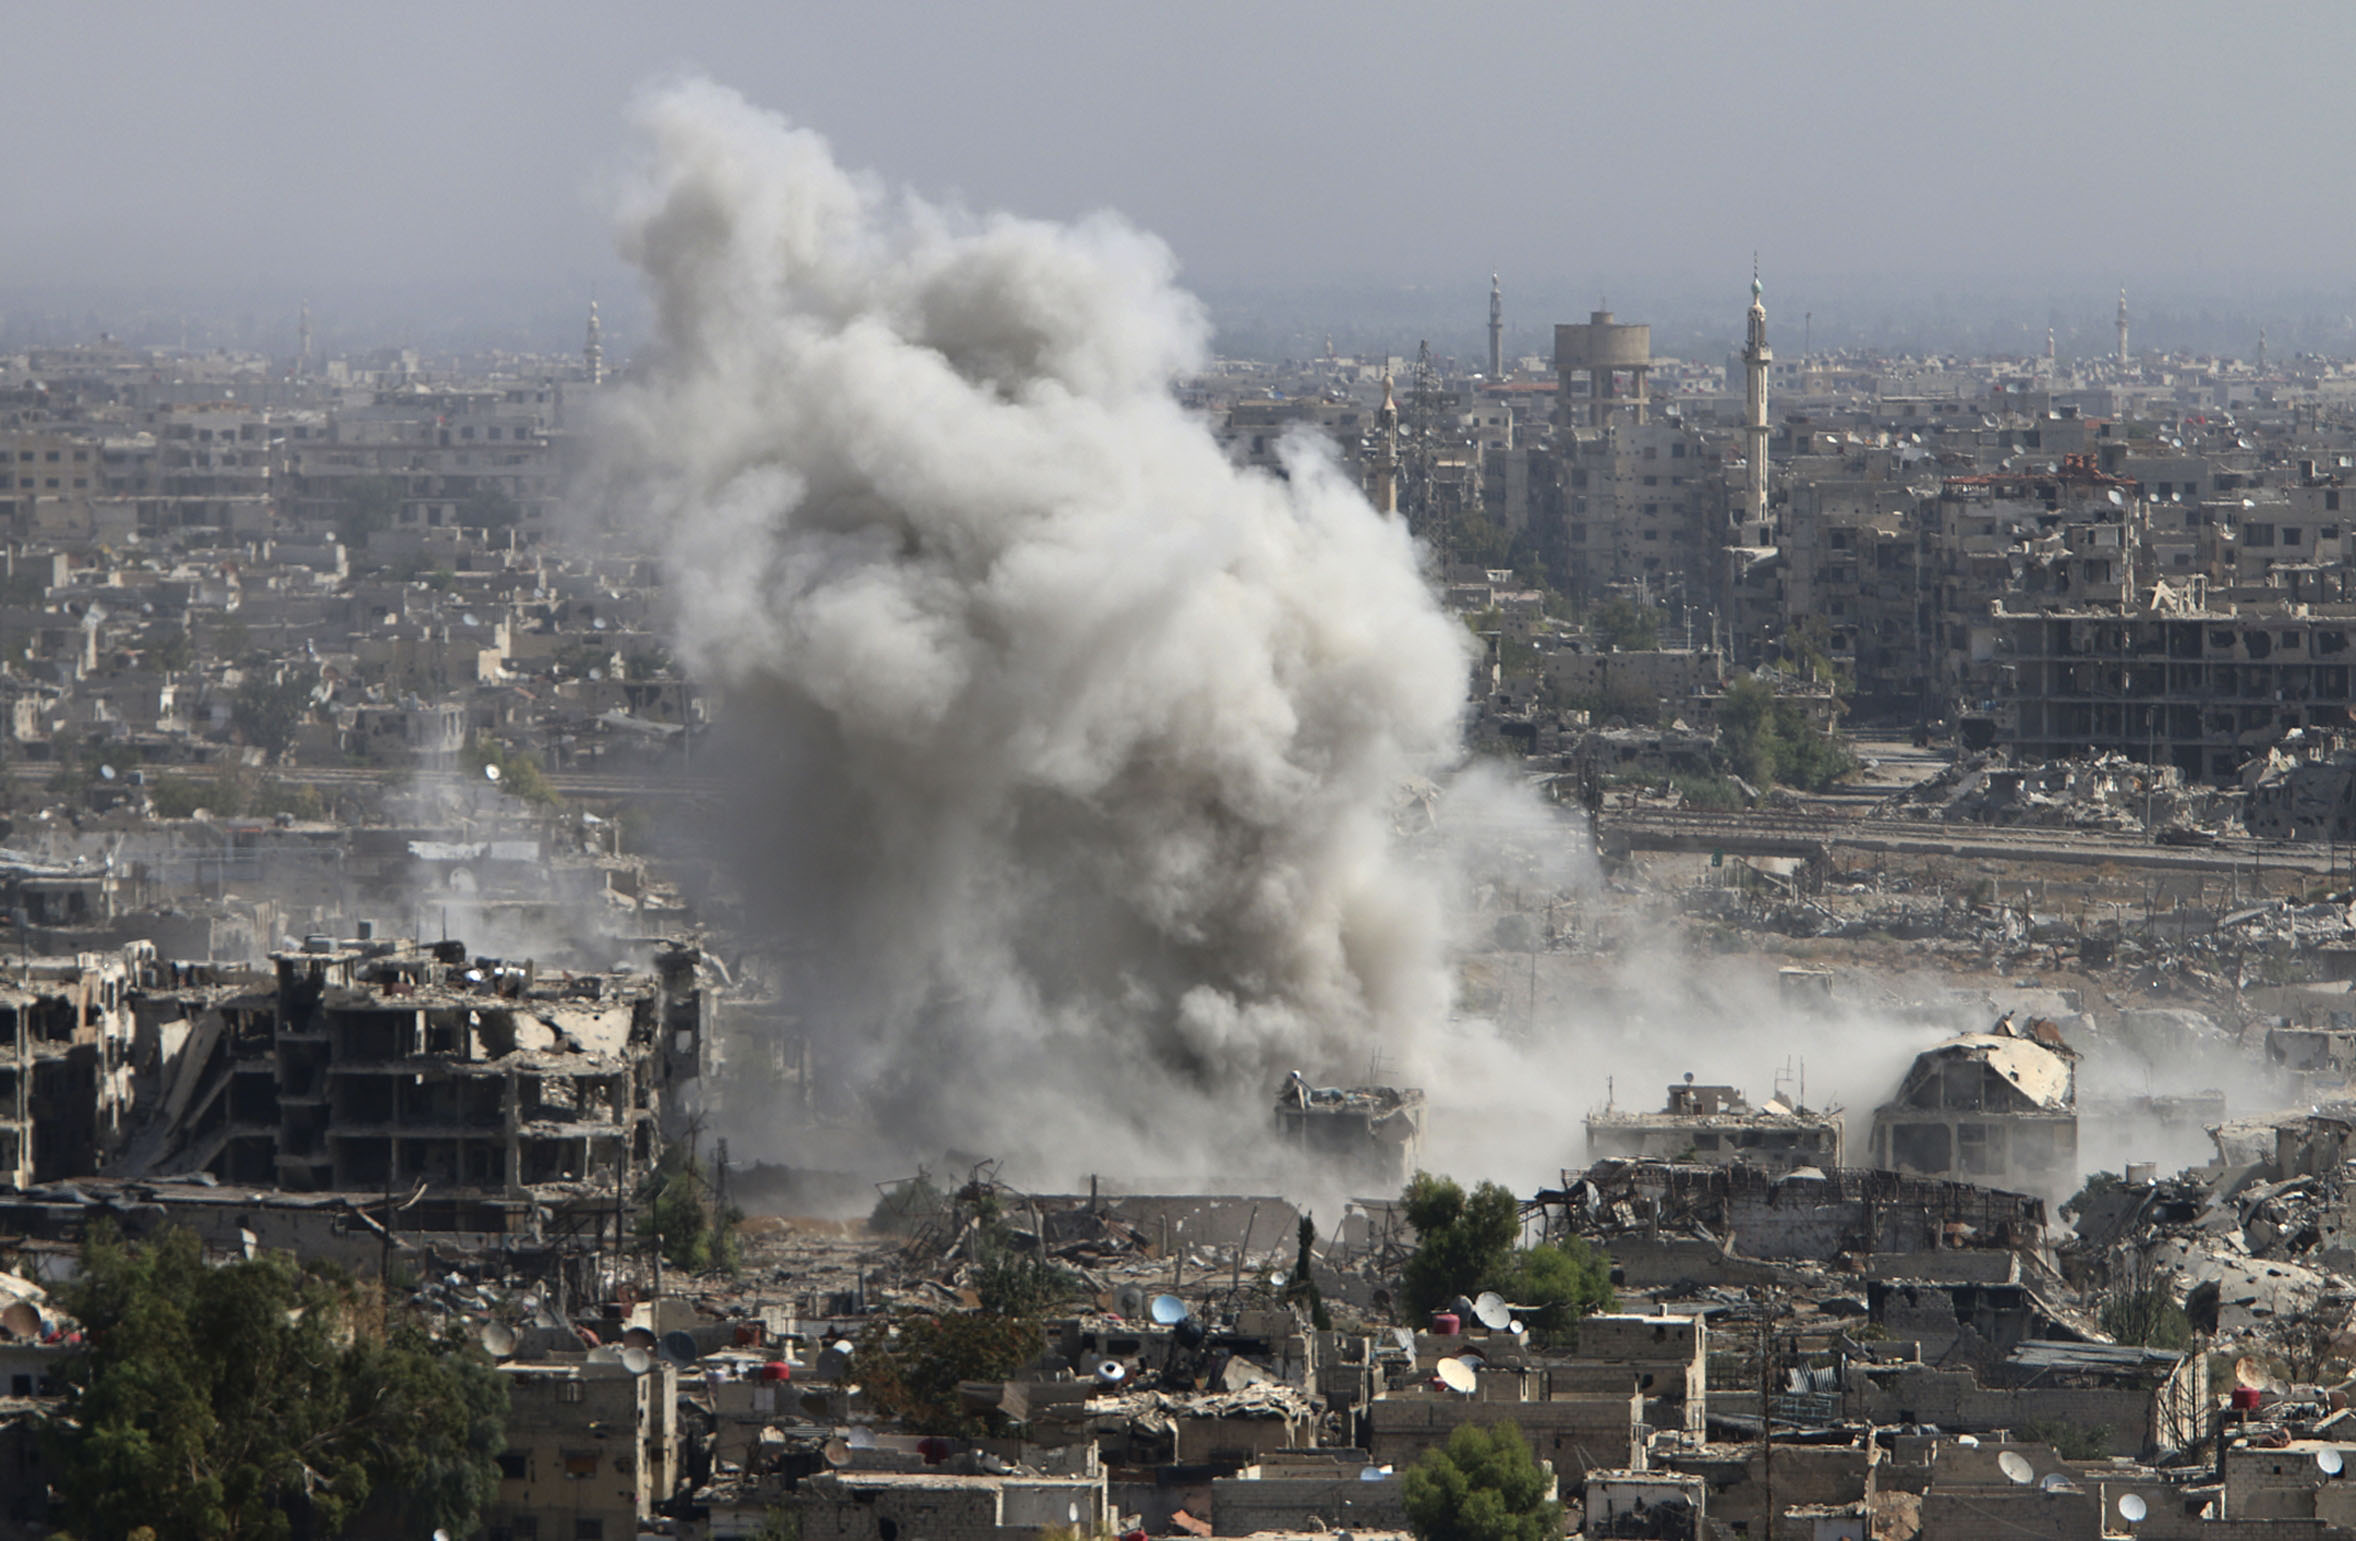 In this photo taken on Wednesday, Oct. 14, 2015, smoke rises after shelling by Syrian army in Jobar, Damascus, Syria. Backed by Russian airstrikes, the Syrian army has launched an offensive in central and northwestern regions.  (Alexander Kots/Komsomolskaya Pravda via AP) RUSSIA OUT